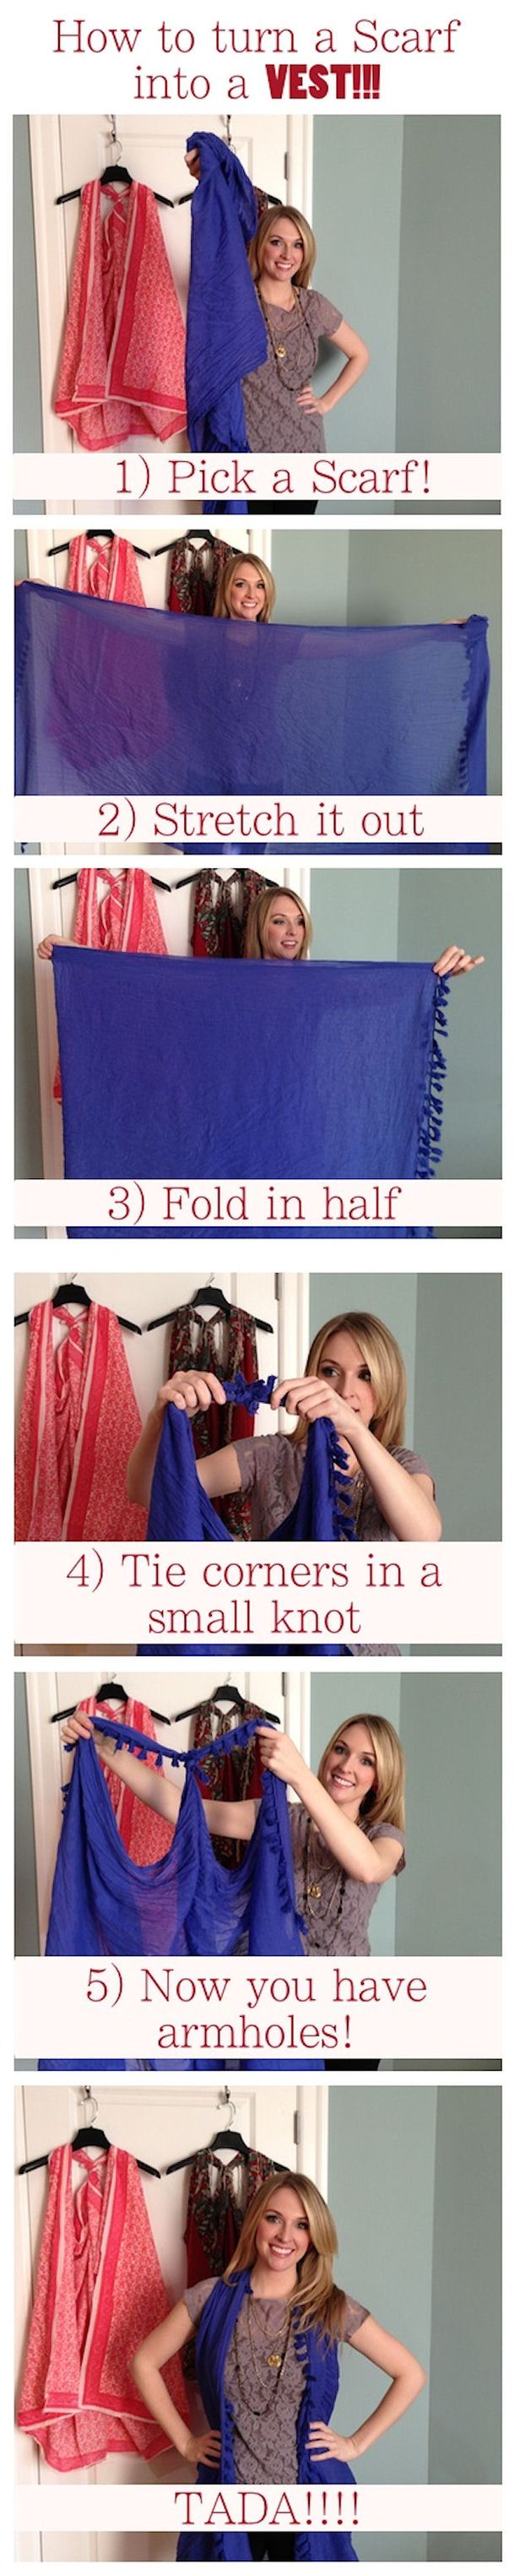 How To Turn A Scarf Into A Vest